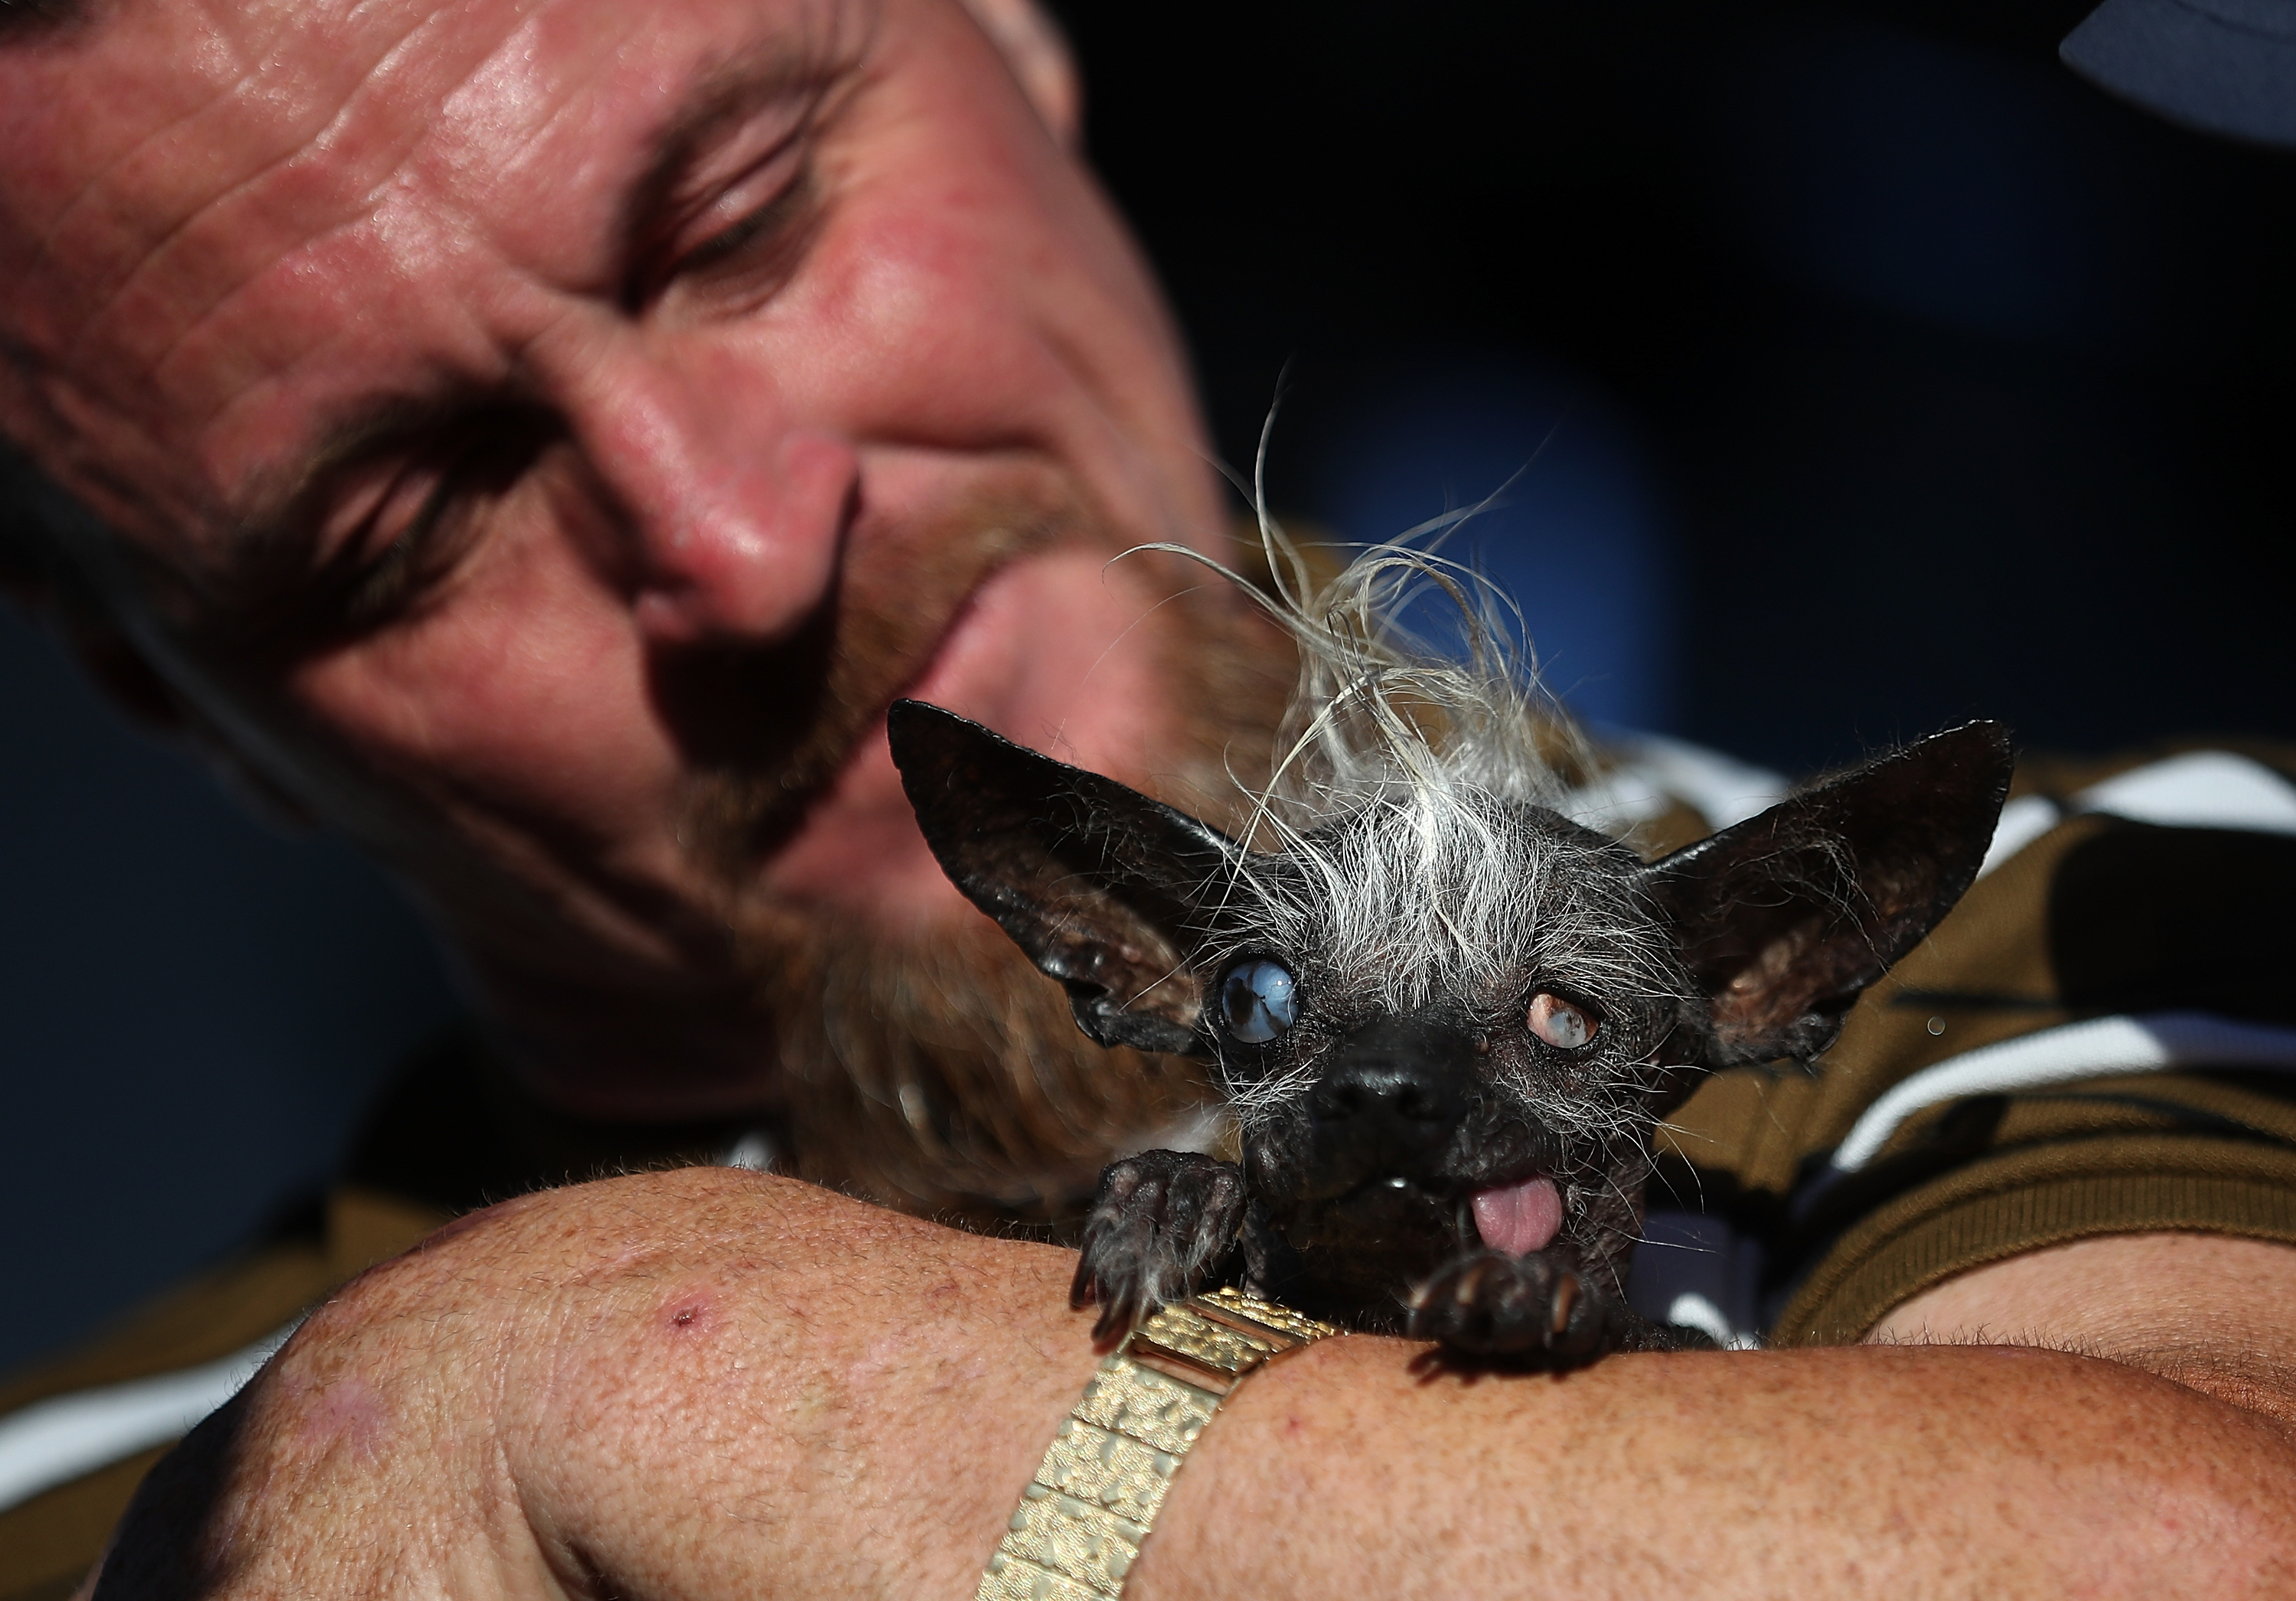 Jason Wurtz of Van Nuys, Calif., holds his dog Sweepee Rambo after winning the 2016 World's Ugliest Dog contest at the Sonoma-Marin Fair in Petaluma, Calif., on June 24, 2016.